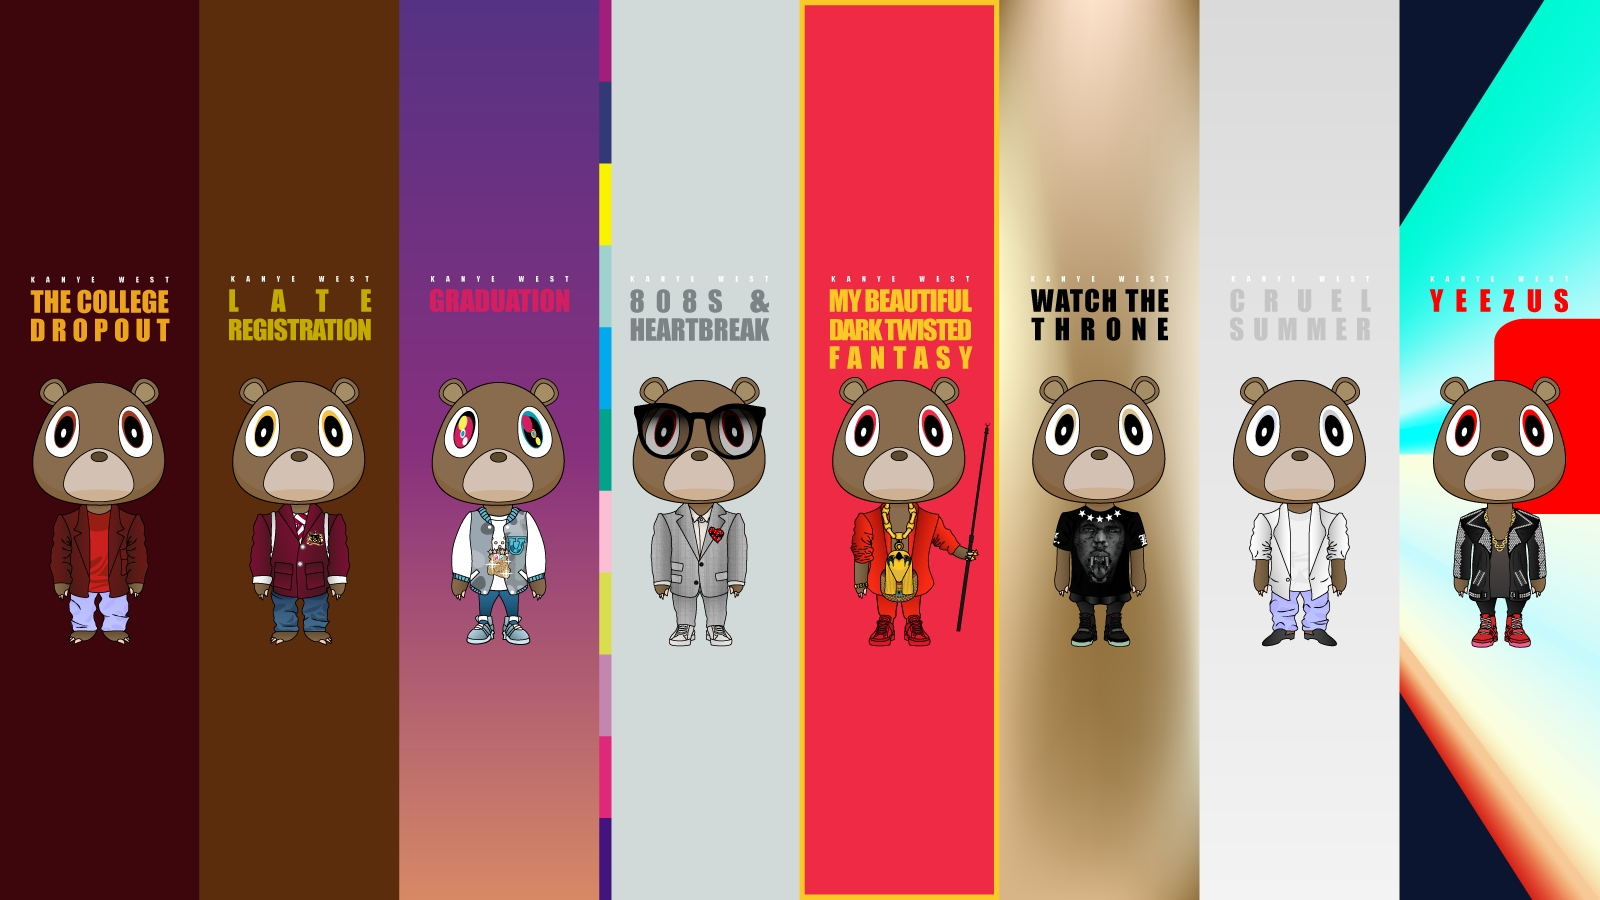 i just found this kanye west album style wallpaper - imgur